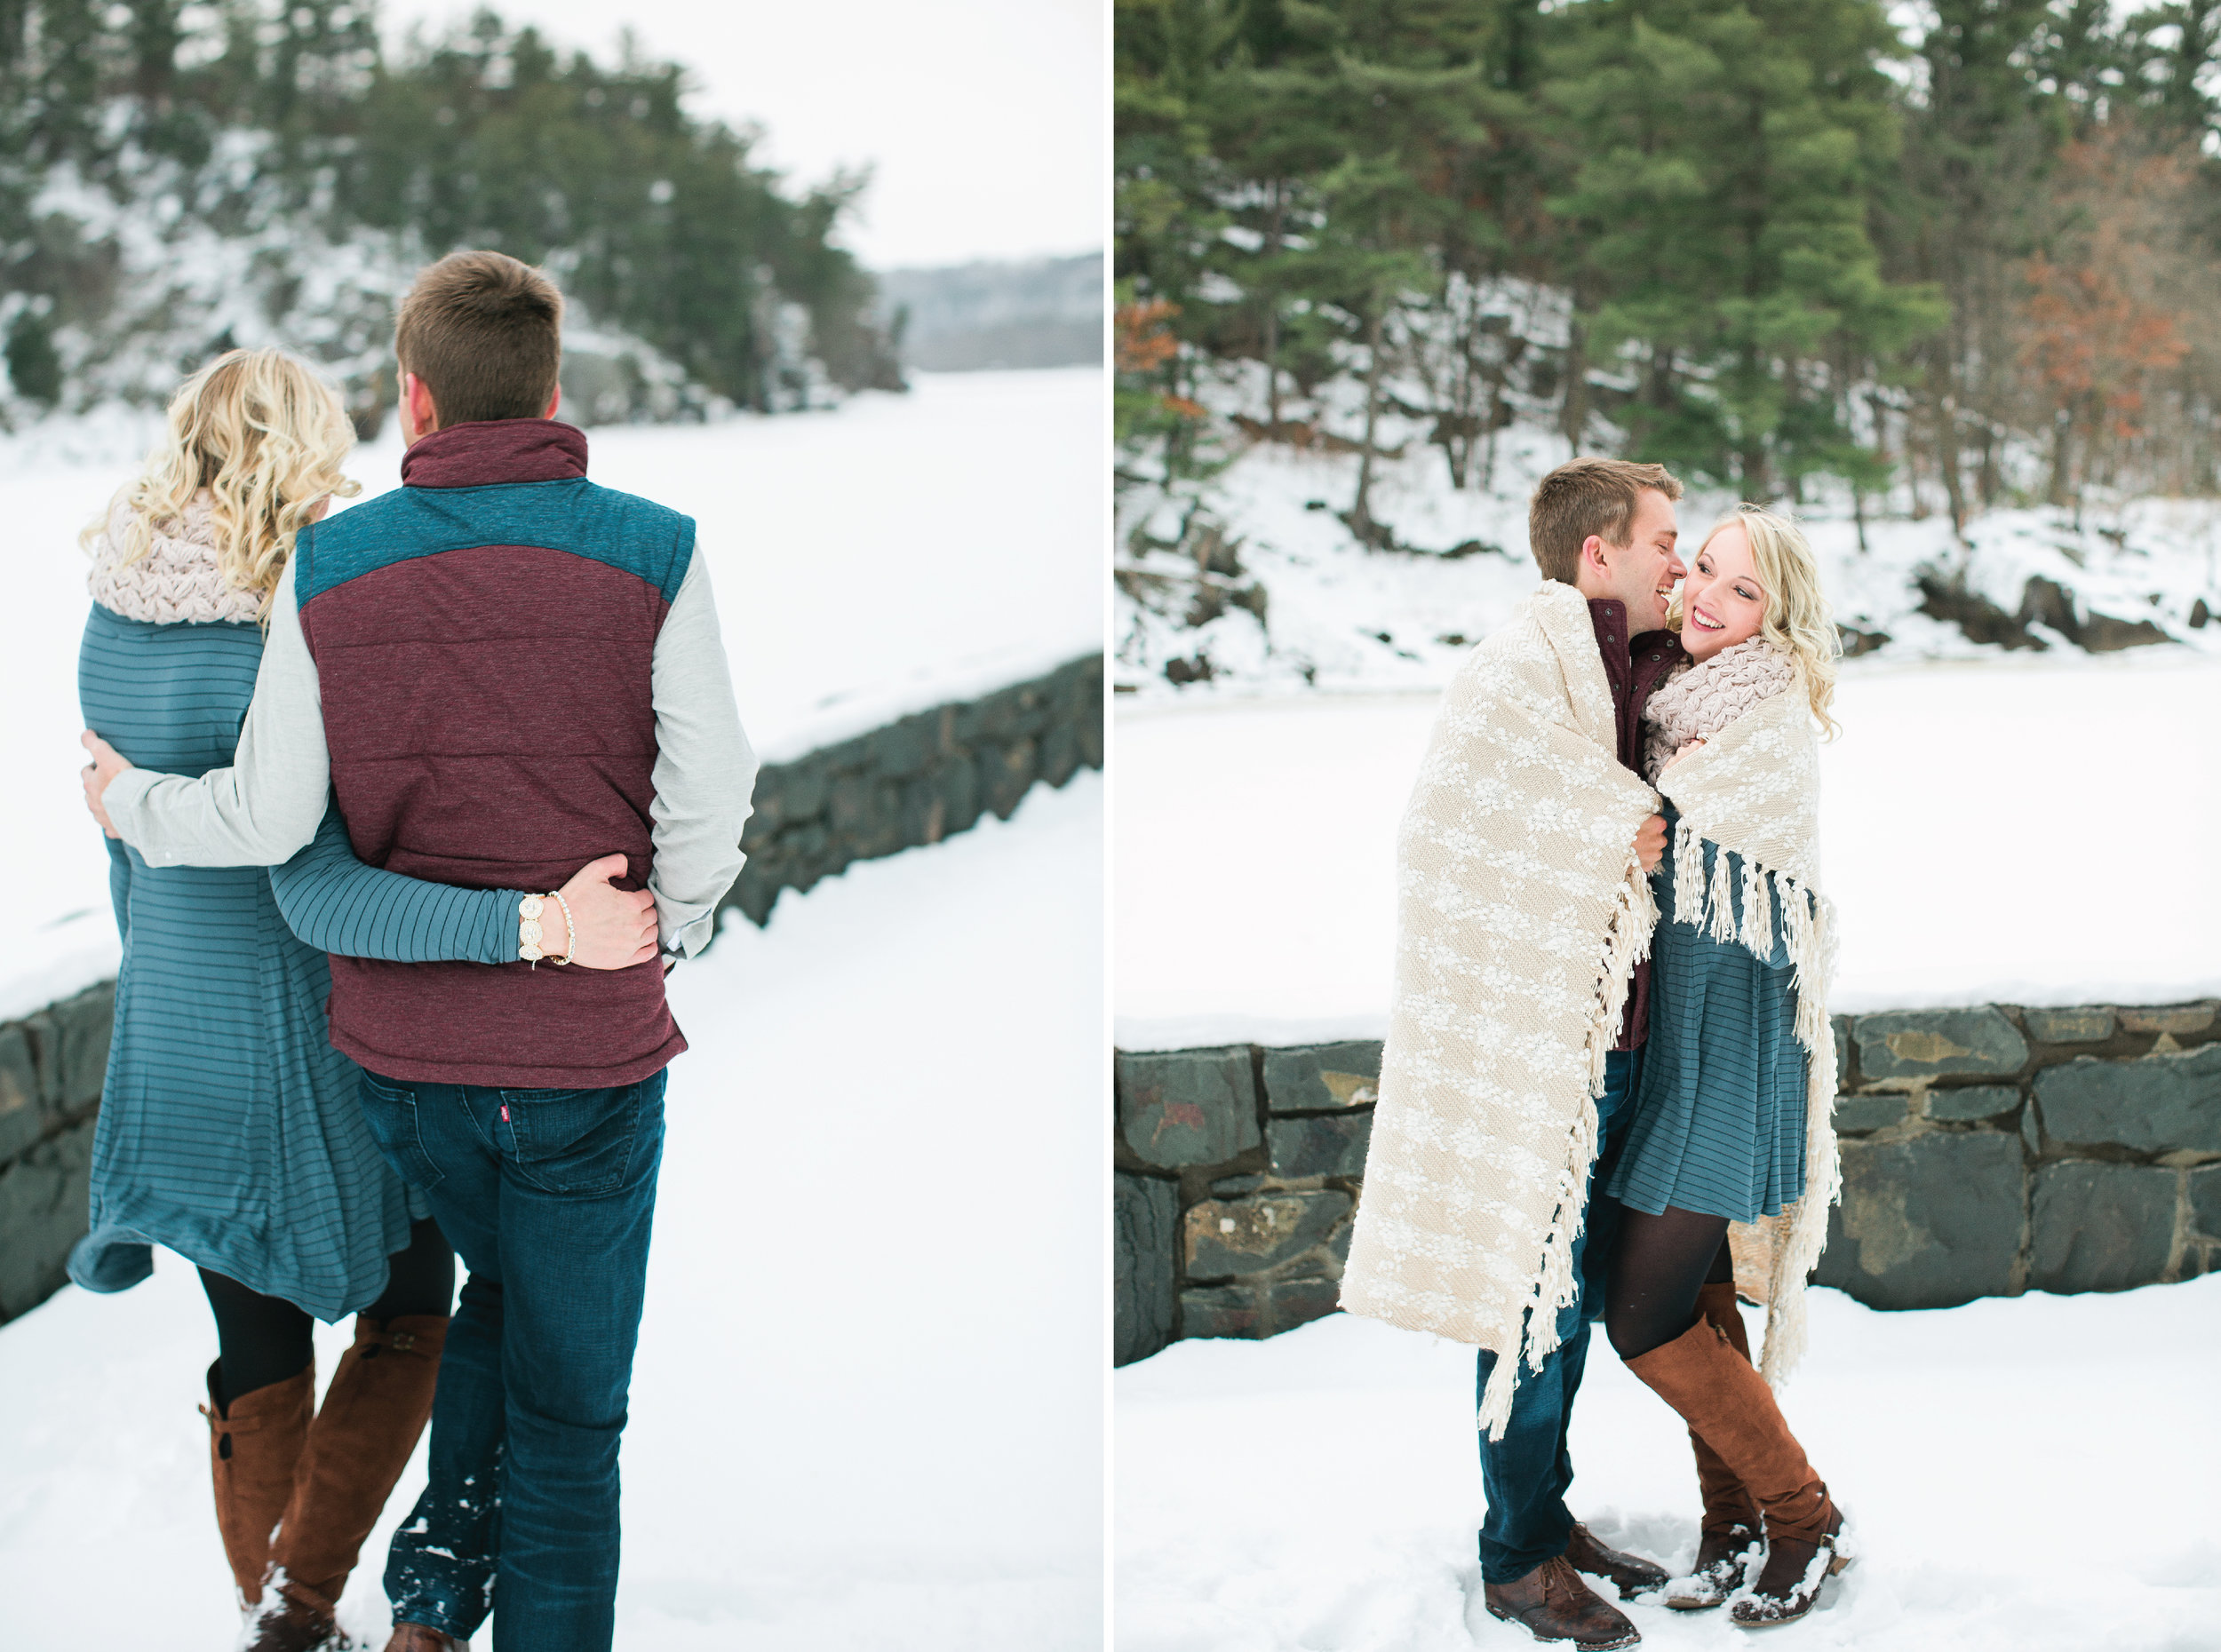 Taylors Falls Minnesota snowy winter engagement session couple with blanket wrapped around them